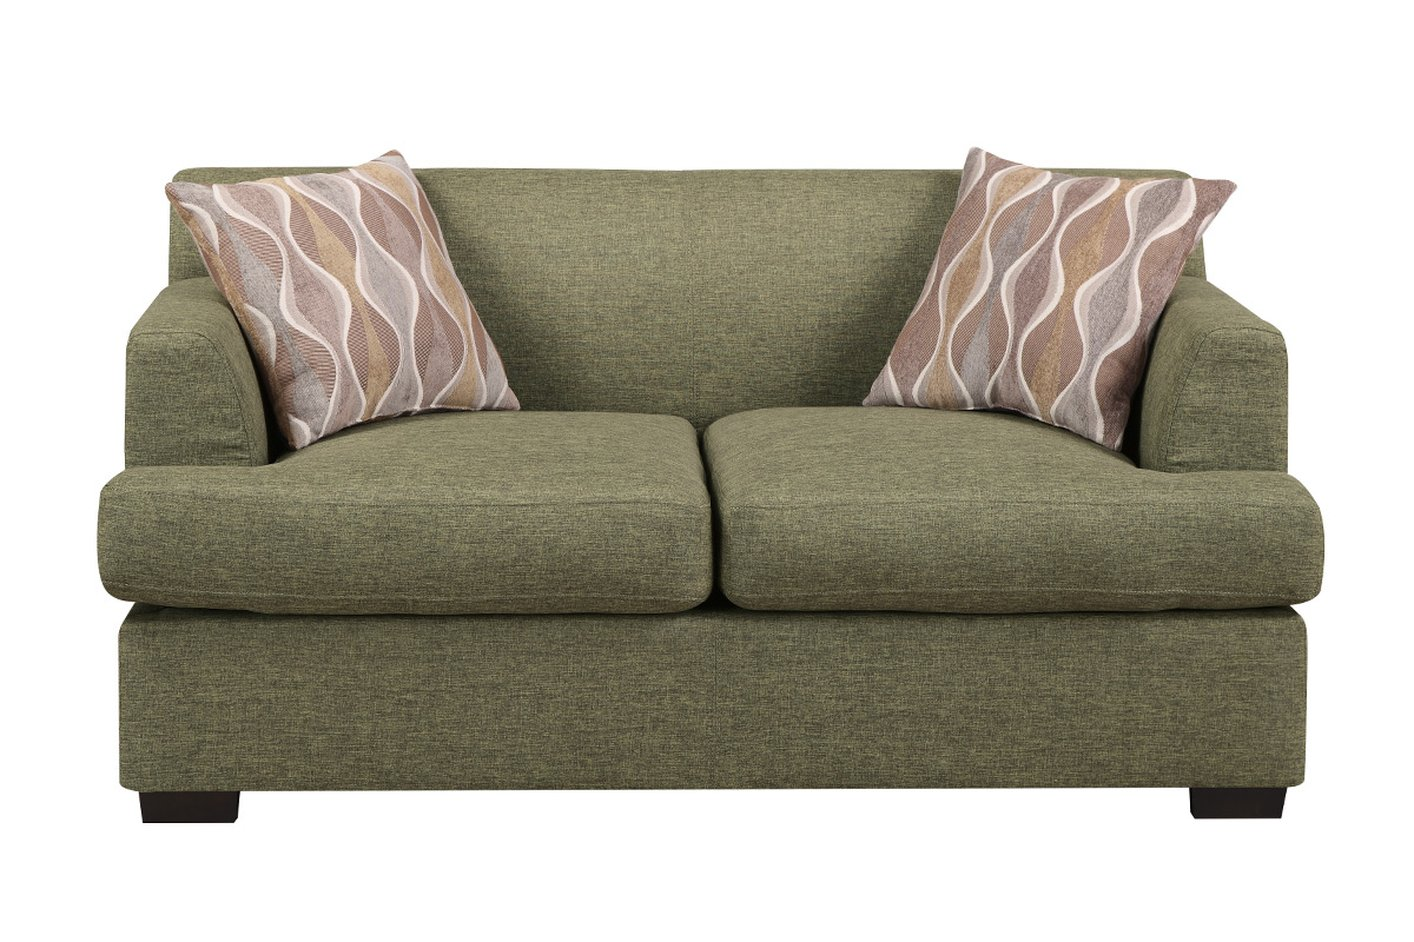 Poundex Montreal V F7977 Green Fabric Loveseat Steal A Sofa Furniture Outlet Los Angeles Ca